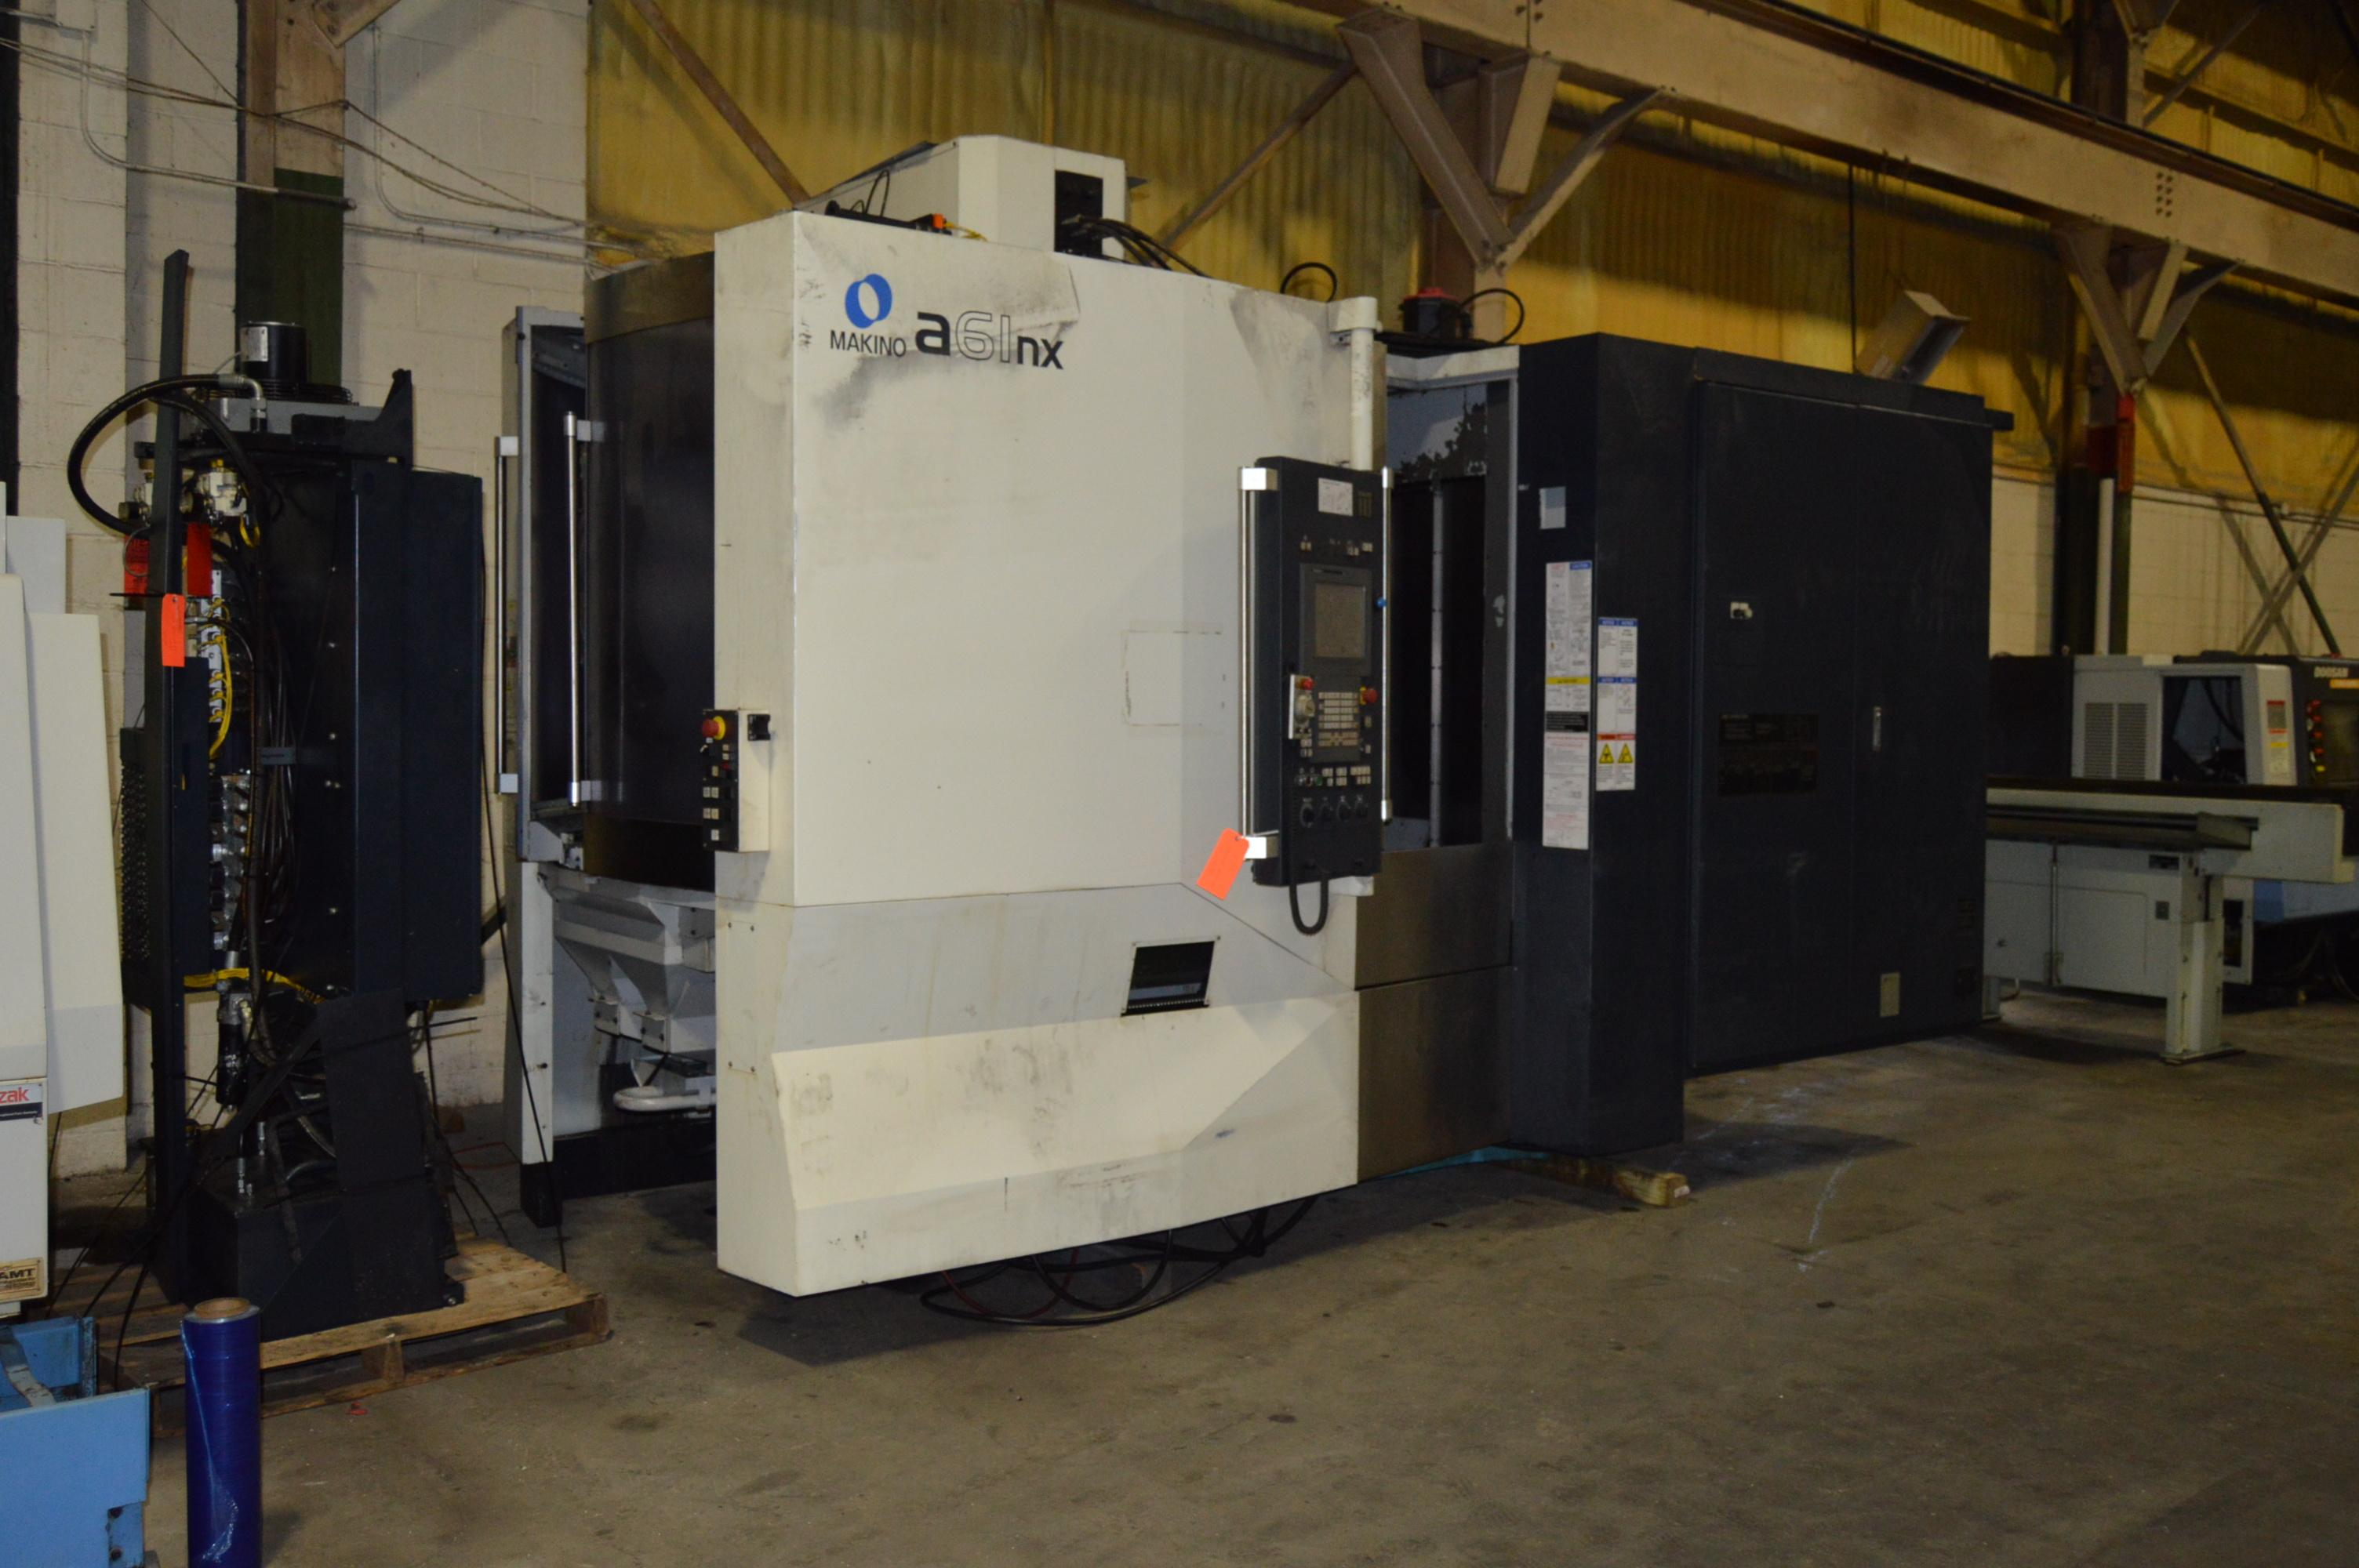 Makino A-61NX CNC Horizontal Machining Center, Fanuc Pro 5 Control, CTS, Hyd. Clamping (3) Available